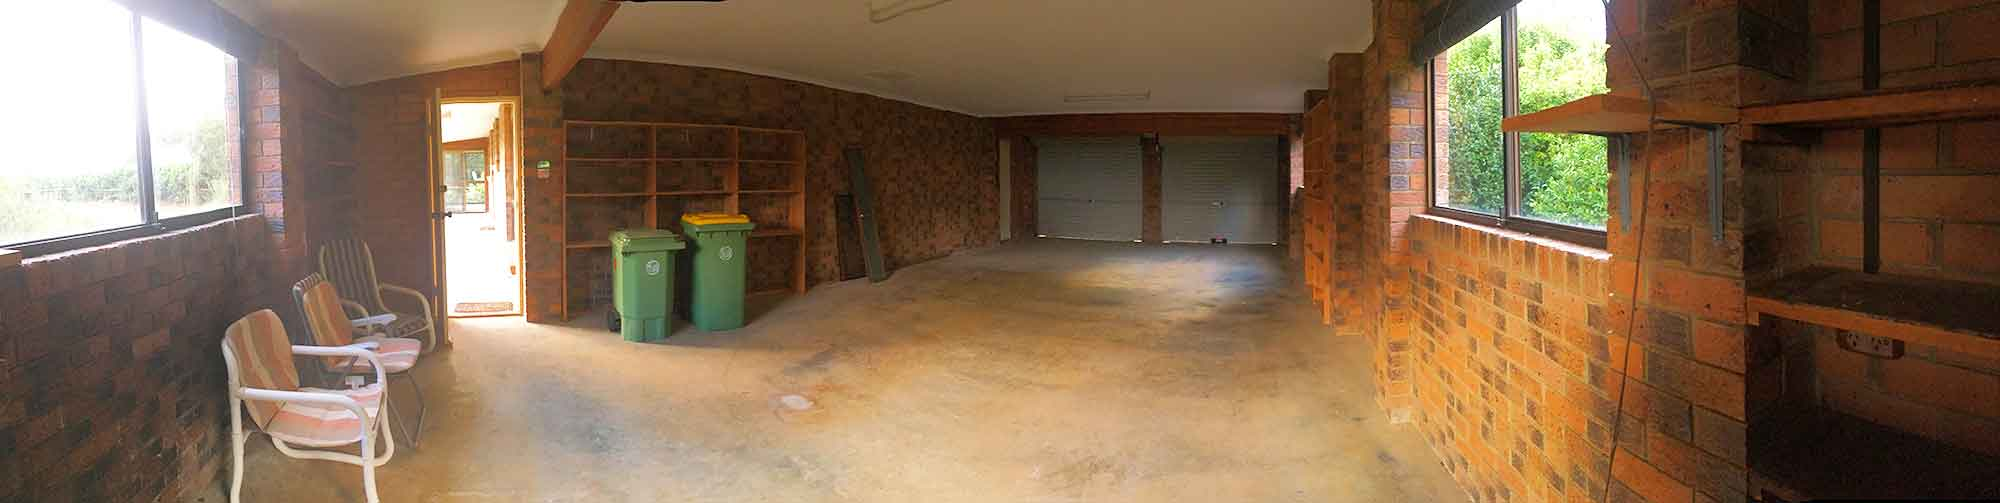 My new studio - an expansive 4 car garage space